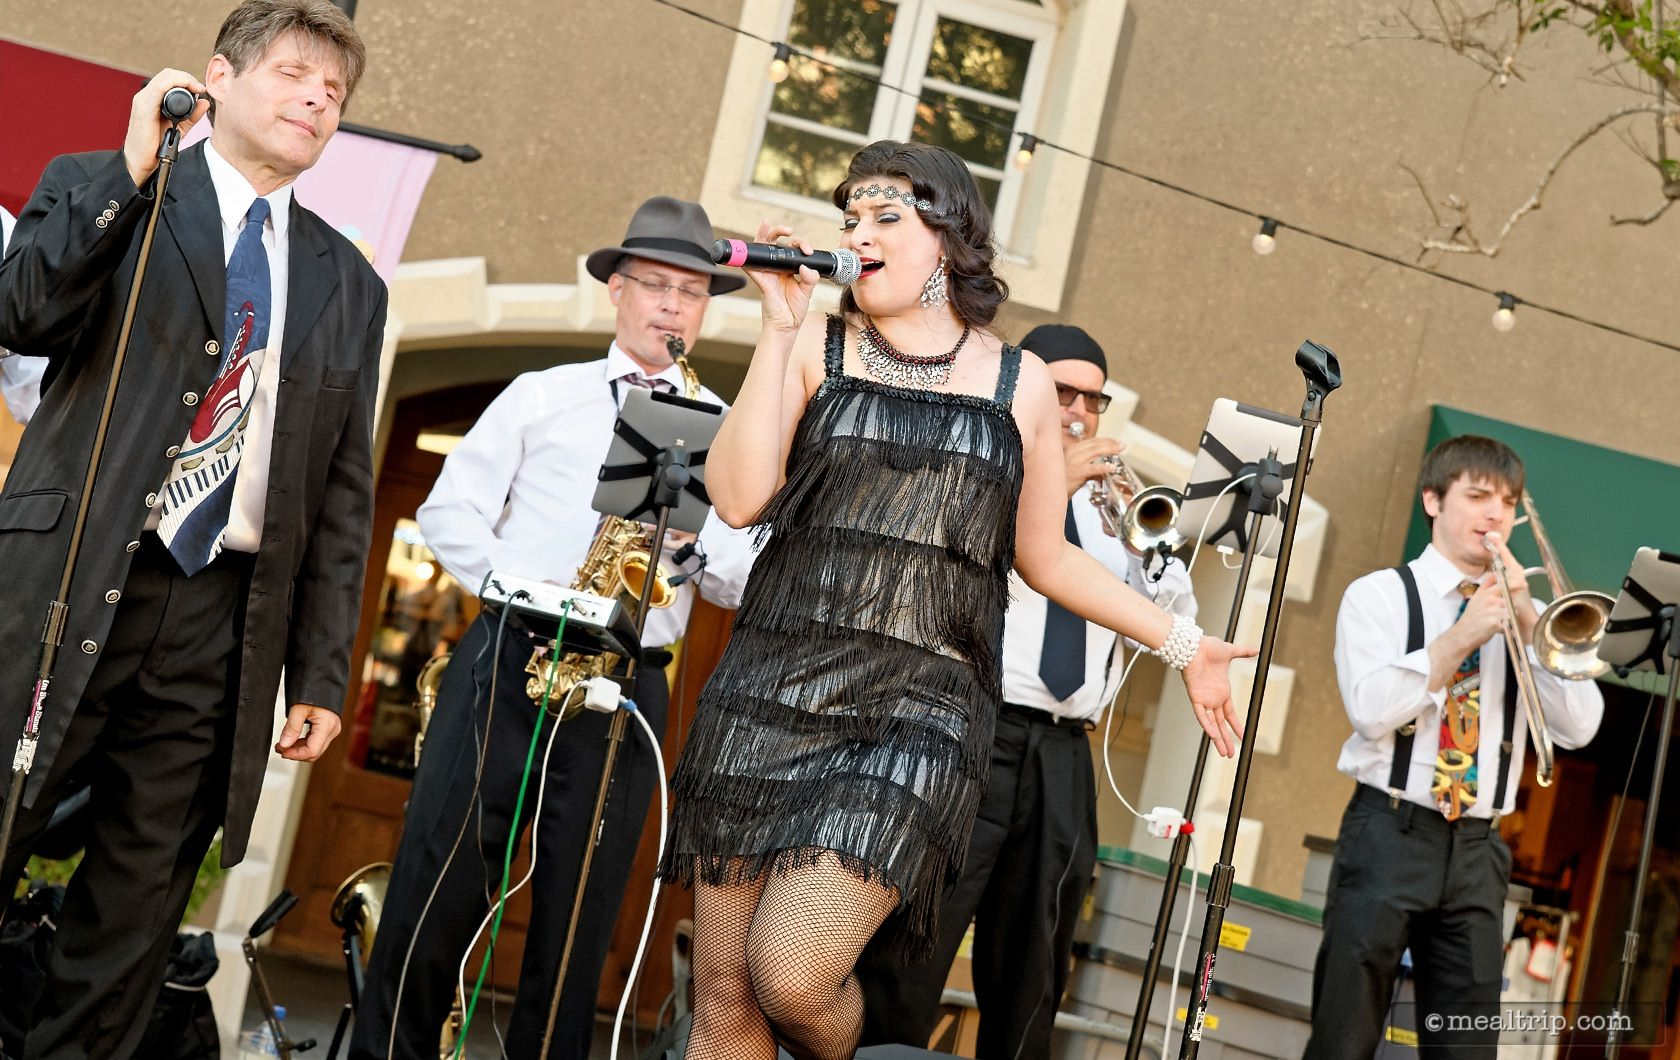 A Harbor Nights Band Performs at the Primavera Event